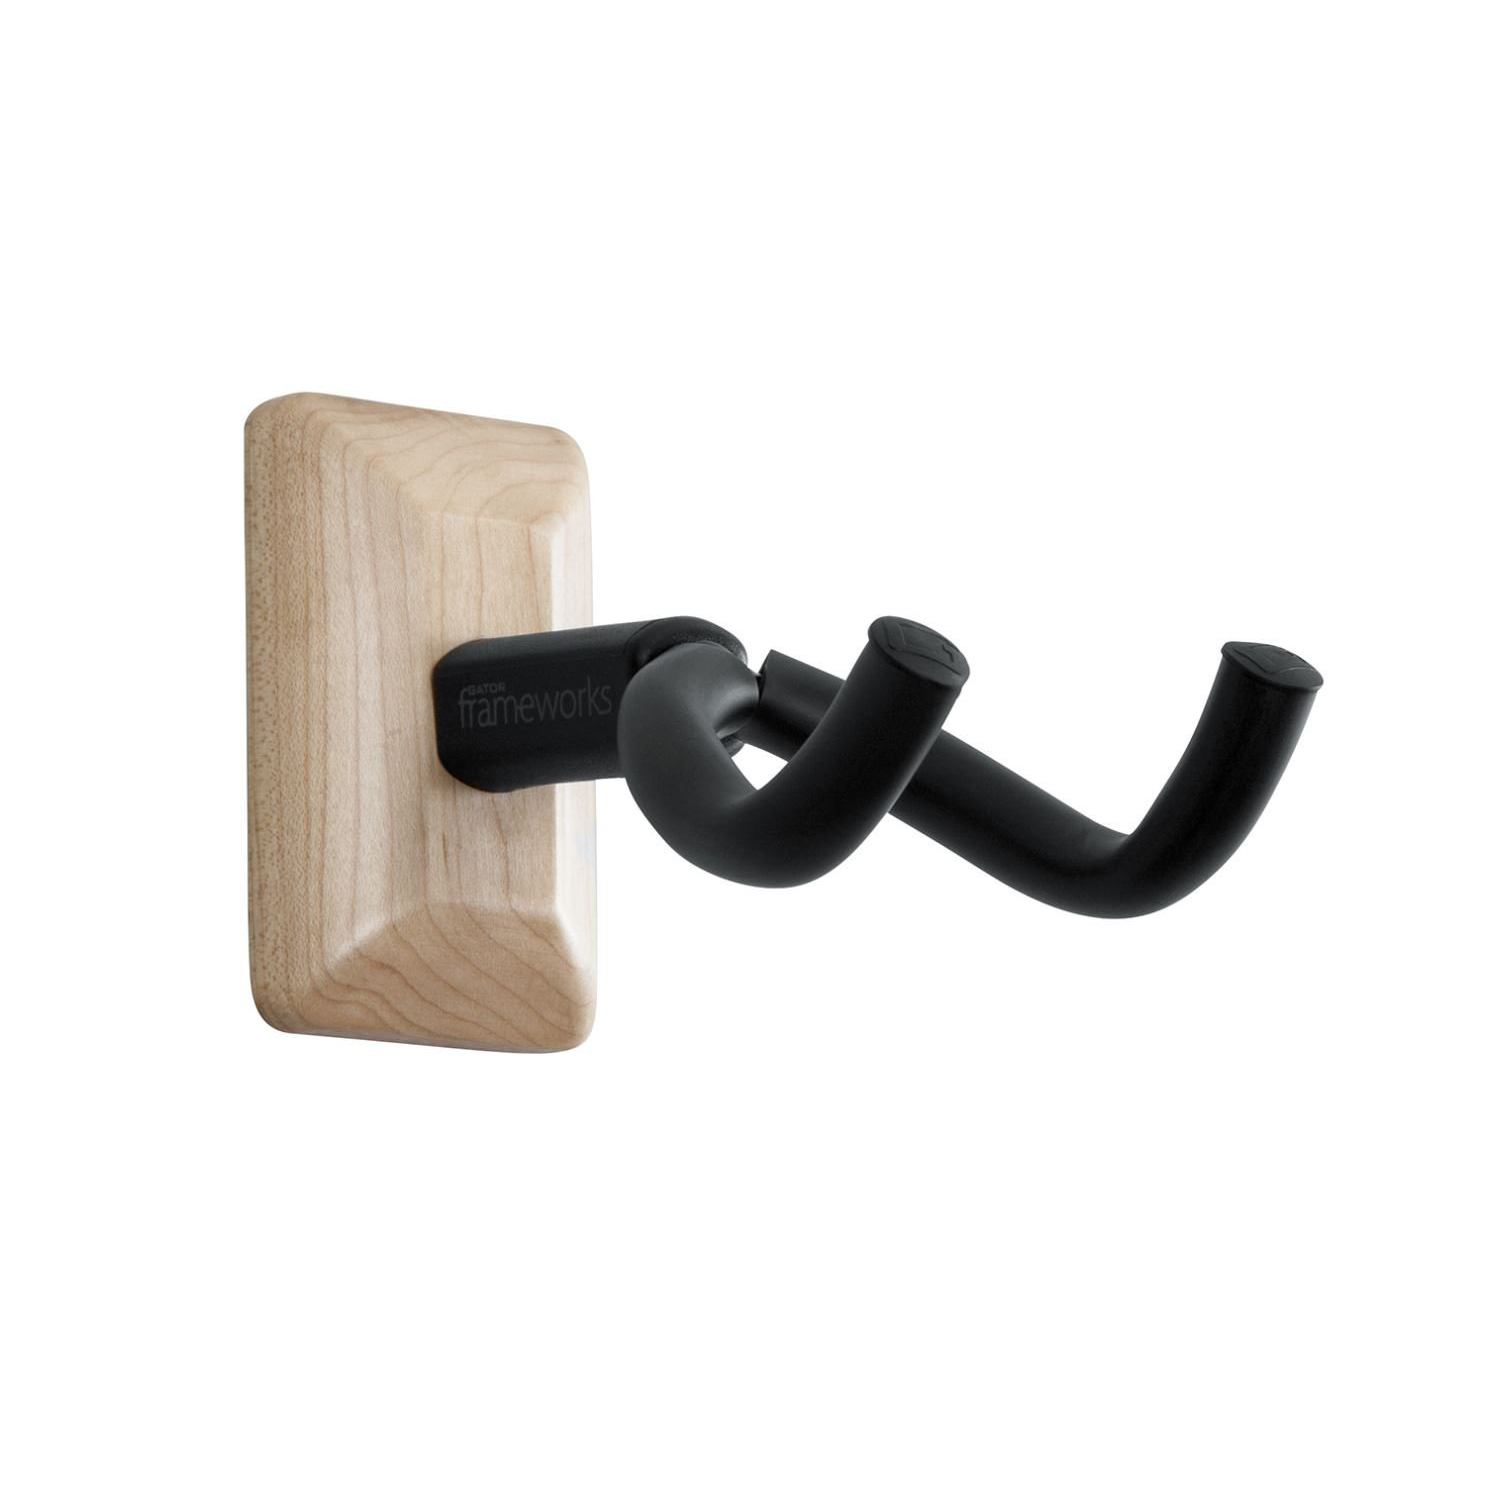 Gator GFW-GTR-HNGRMPL Frameworks Wall Mounted Guitar Hanger Maple by Gator